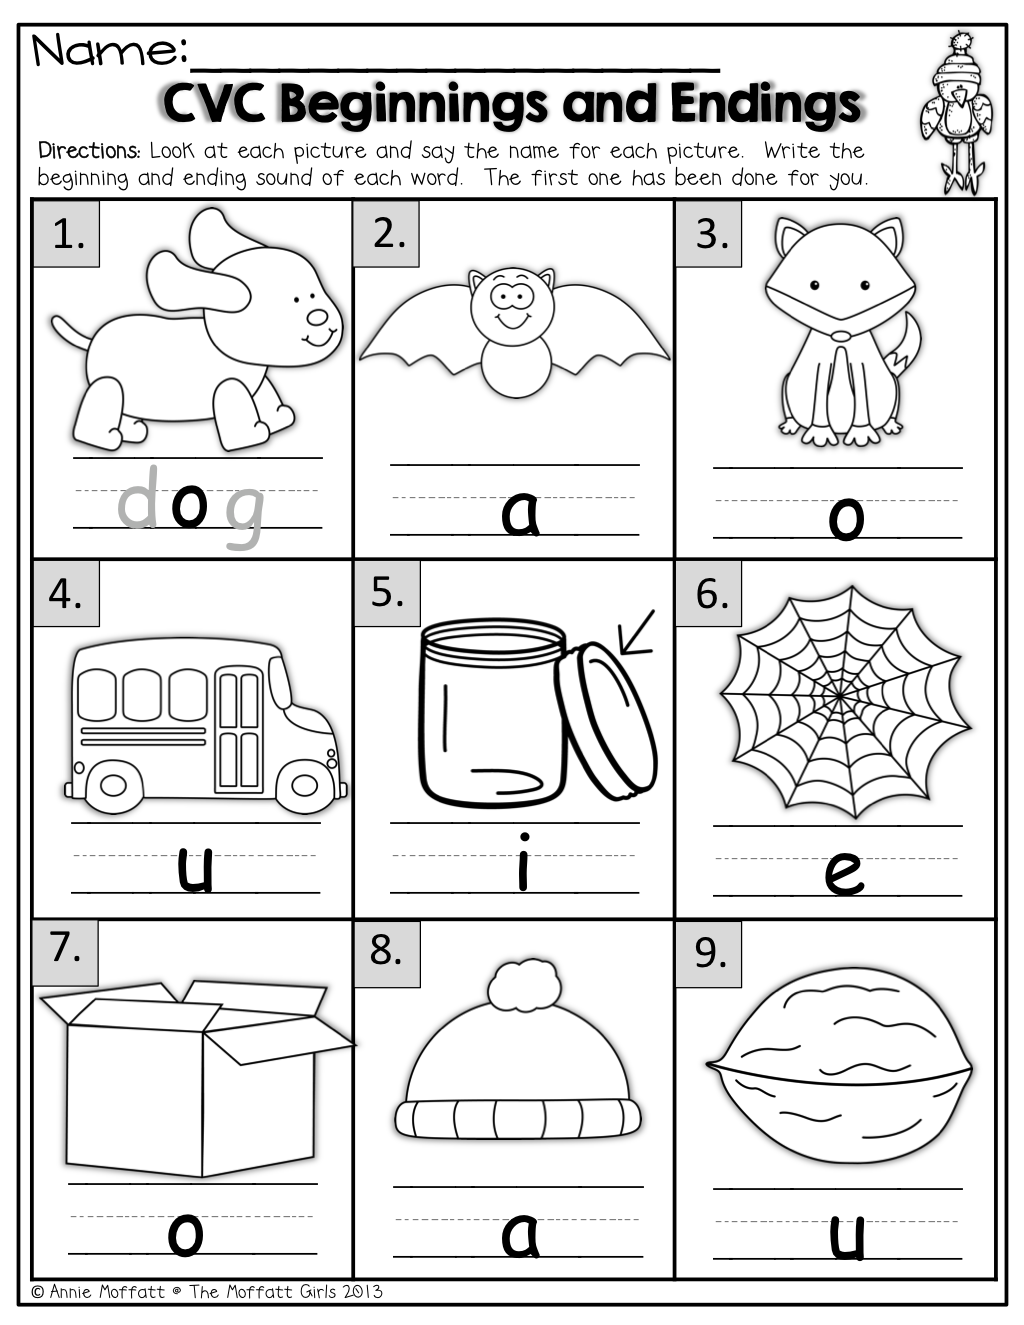 cvc beginning and endings kinderland collaborative preschool worksheets kindergarten. Black Bedroom Furniture Sets. Home Design Ideas